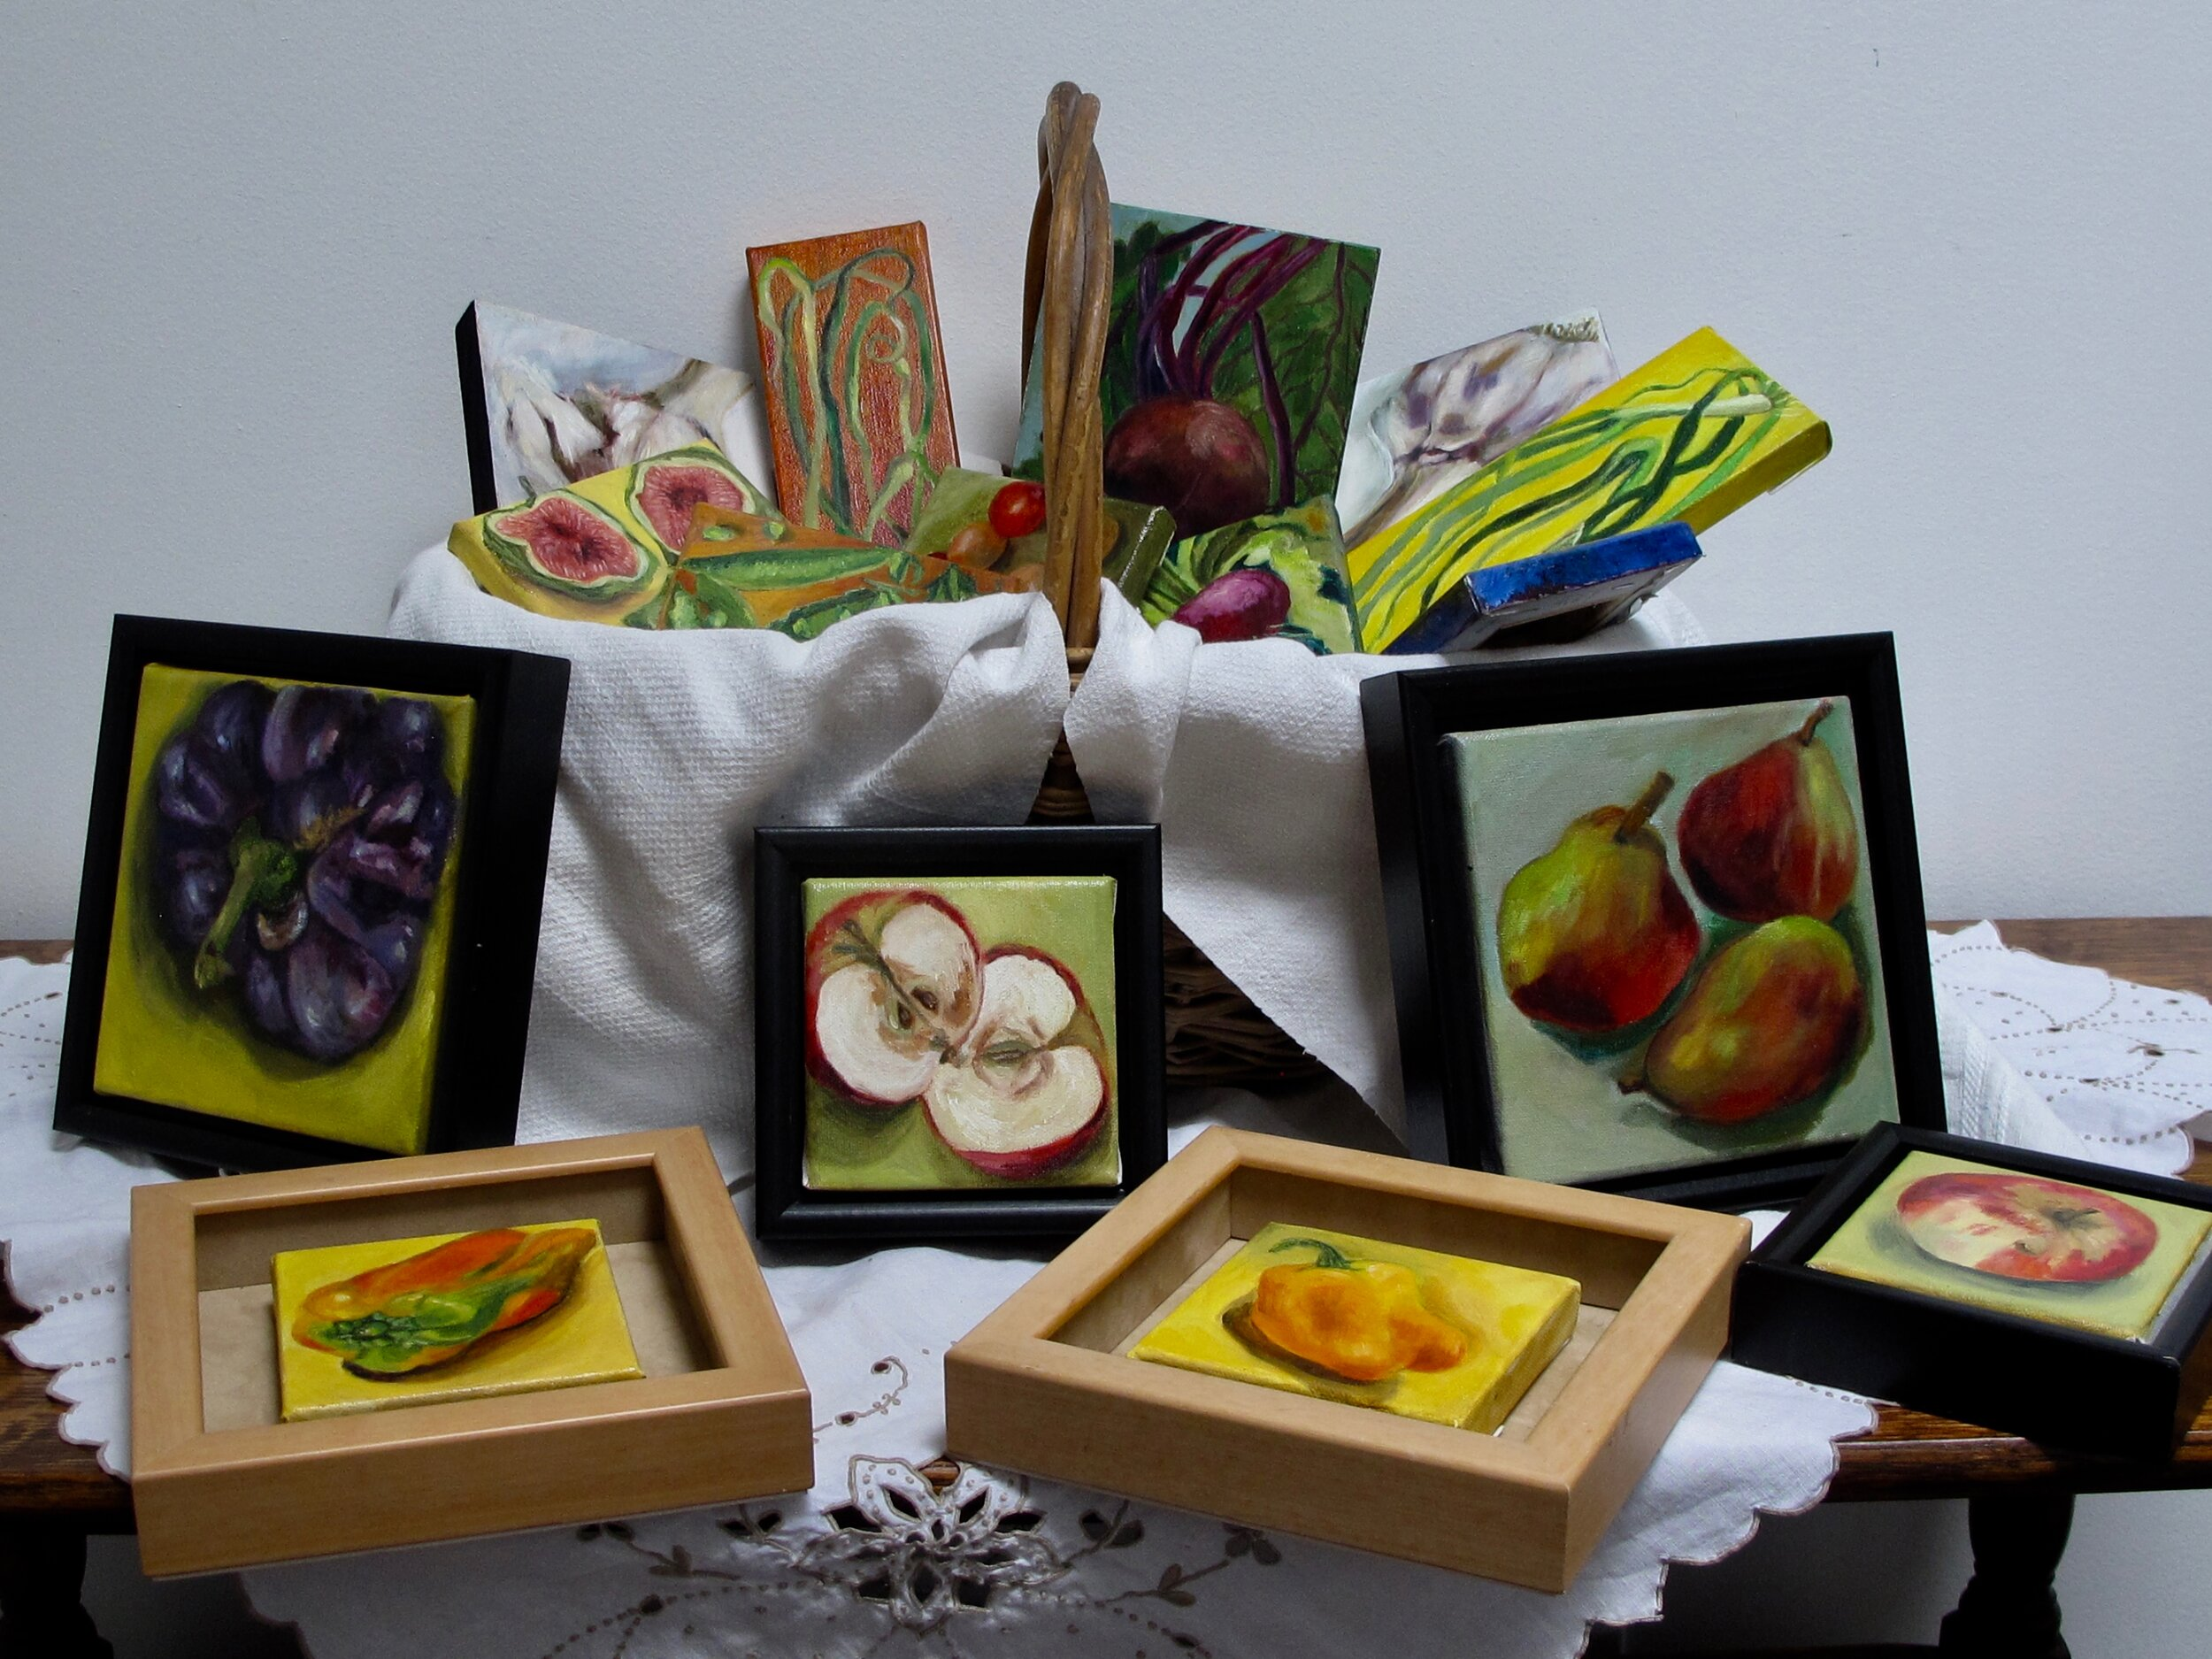 A basket Full ! A variety of mini oil paintings of fruits and veggies from Gabriola's Framer's market ranging in price from $50- $ 120 . These make nice gifts or addition to a kitchen decor and sell quickly. Contact me if you want to see them in detail.